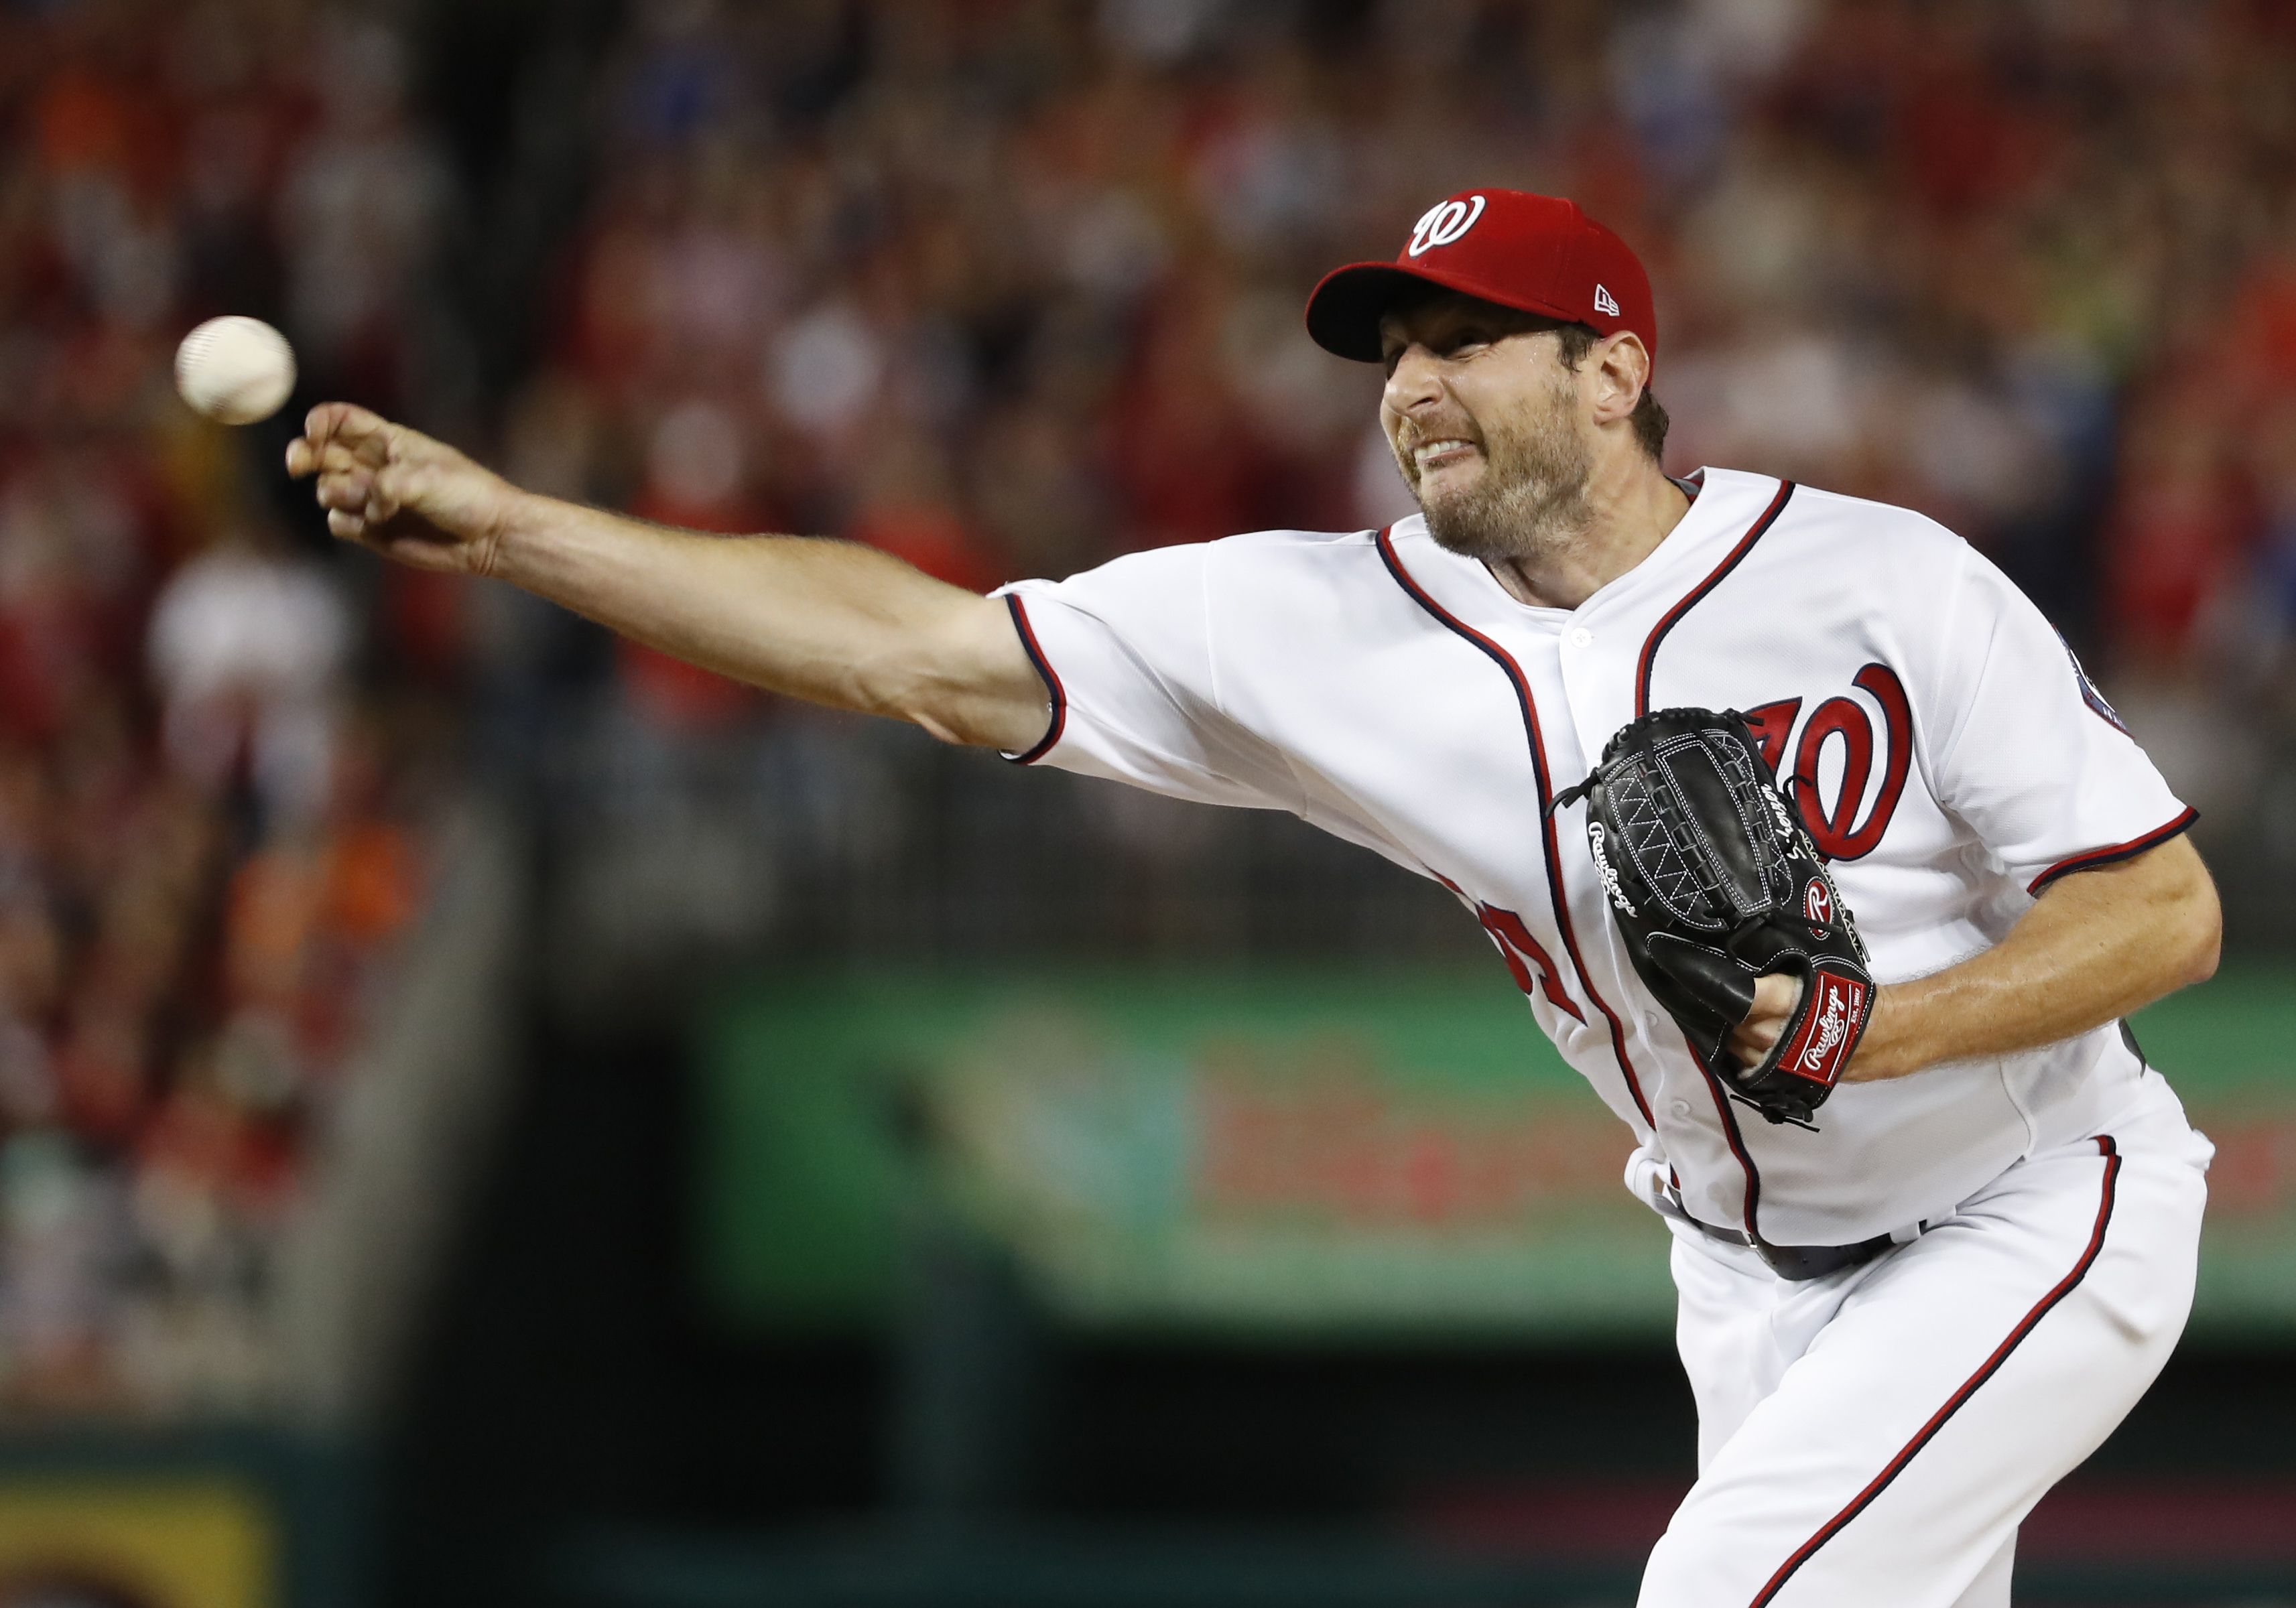 Max Scherzer is looking to win back-to-back Cy Young awards. (AP)